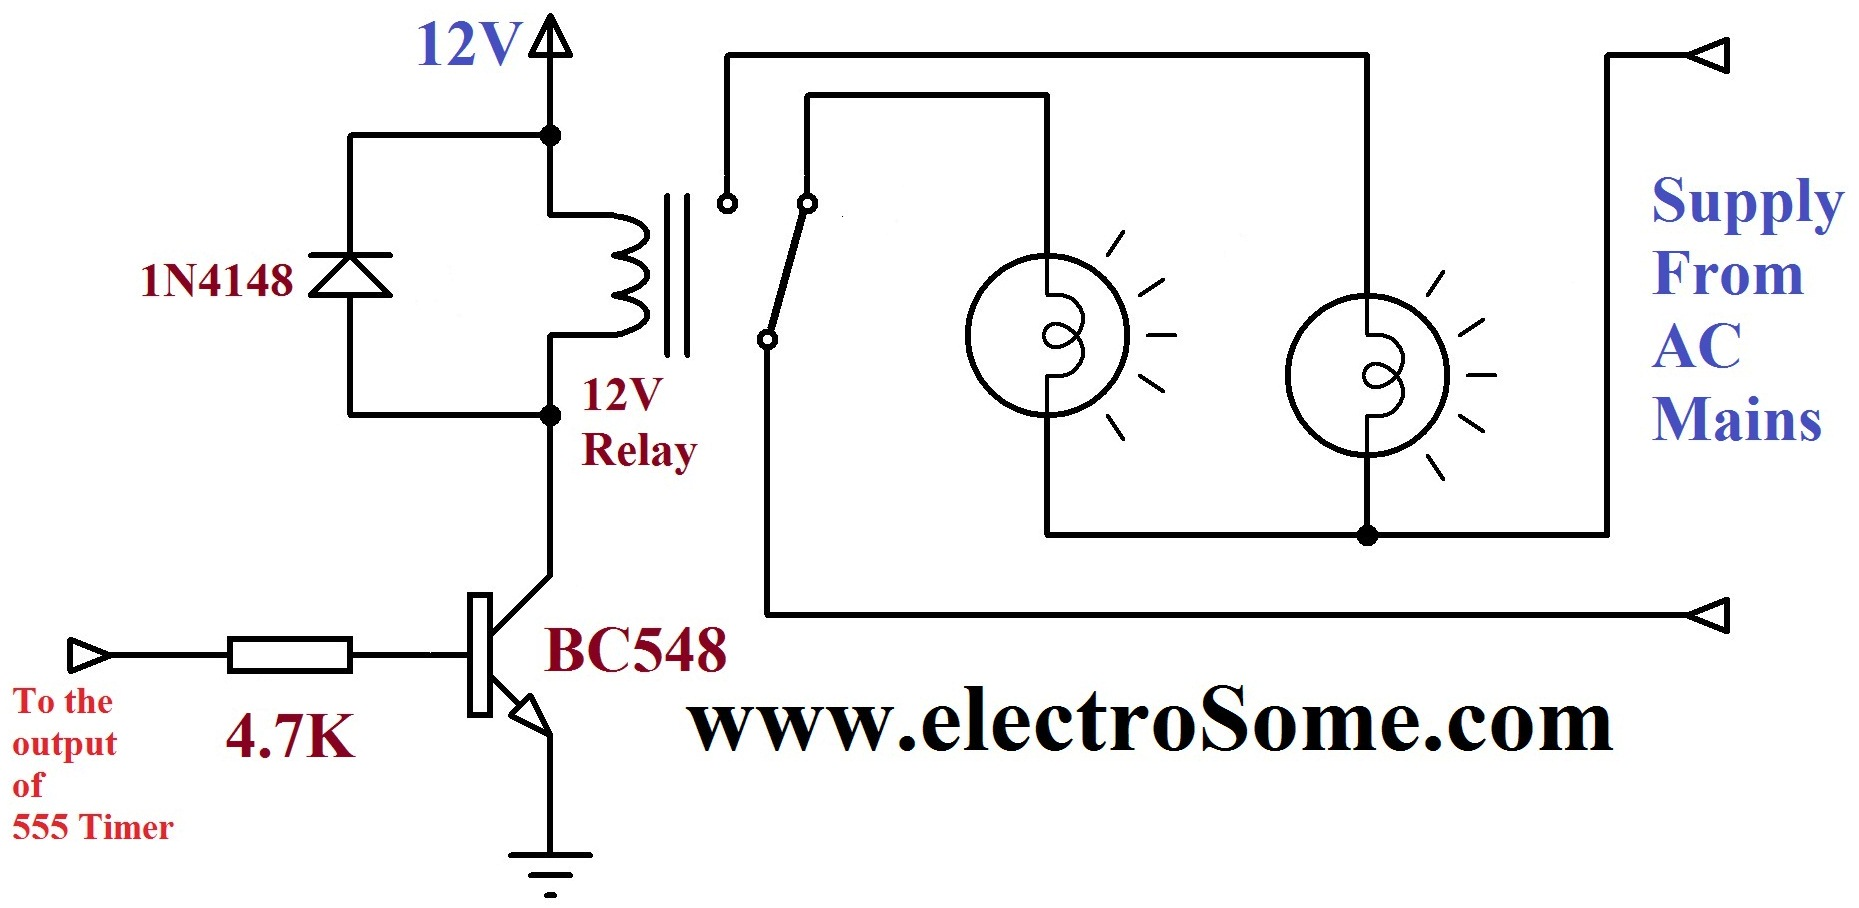 Led Circuit Diagram Dancing Wiring Libraries Backupassist 2010 Gmc Light Using 555 Timerled 14